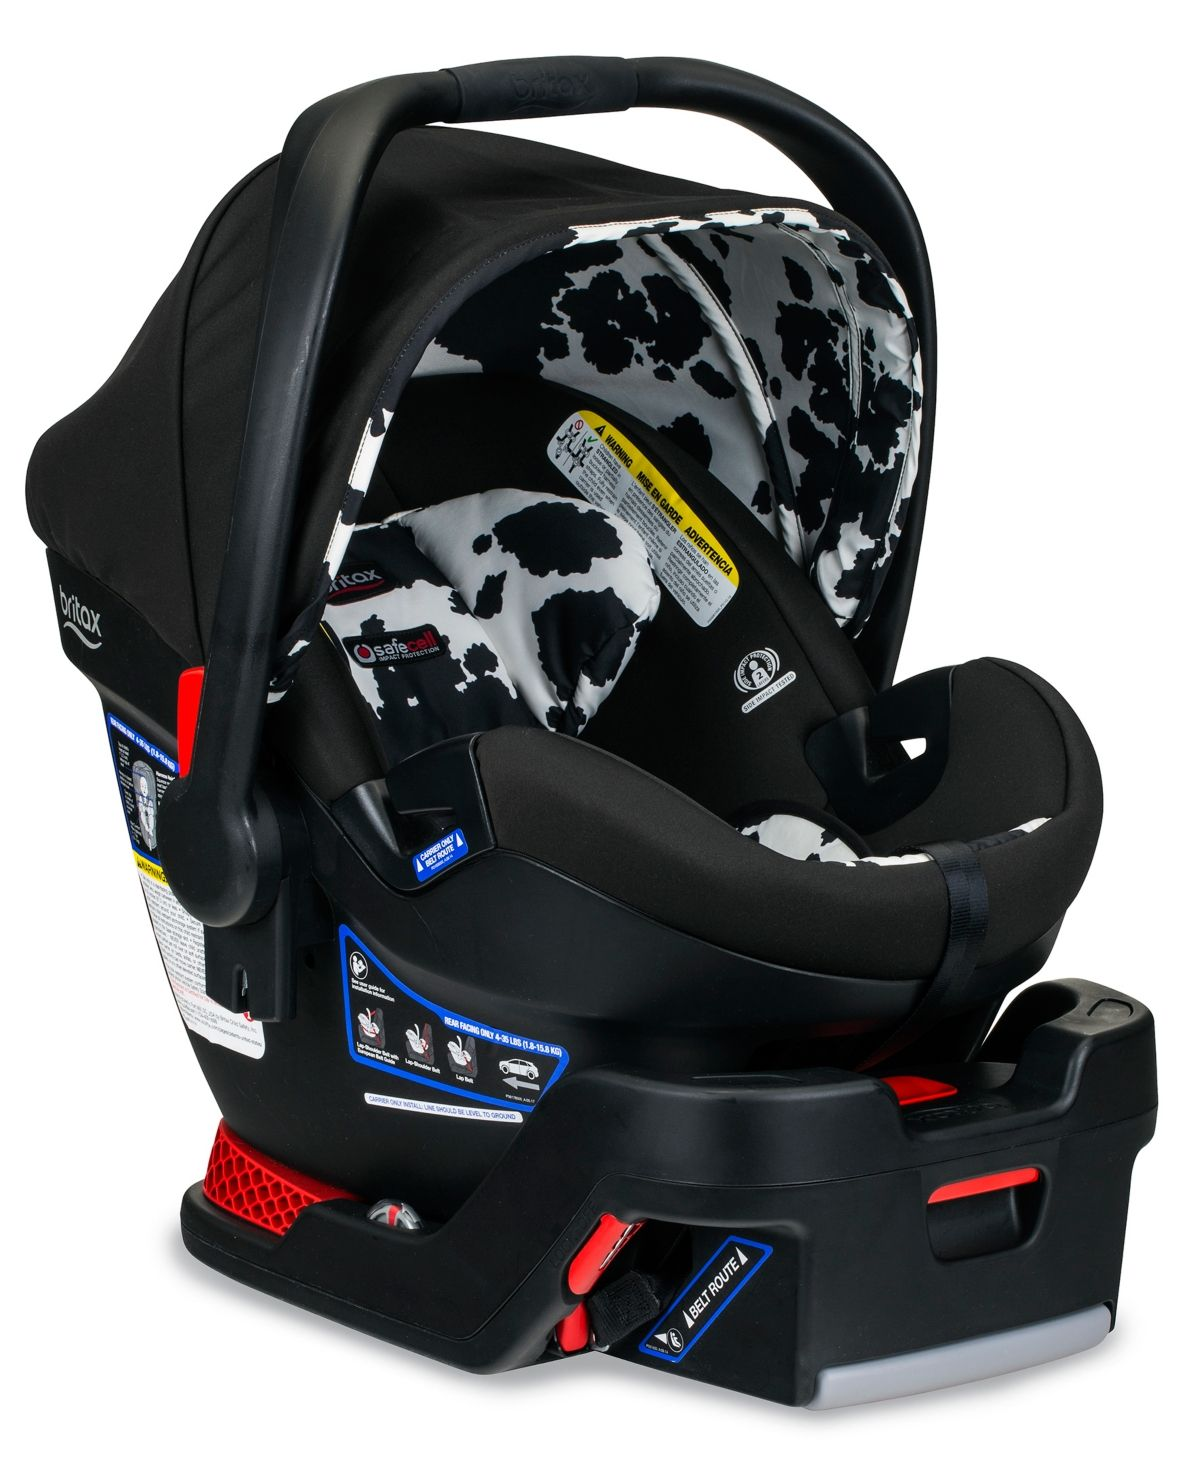 Britax Bsafe Ultra Infant Car Seat Reviews All Baby Gear